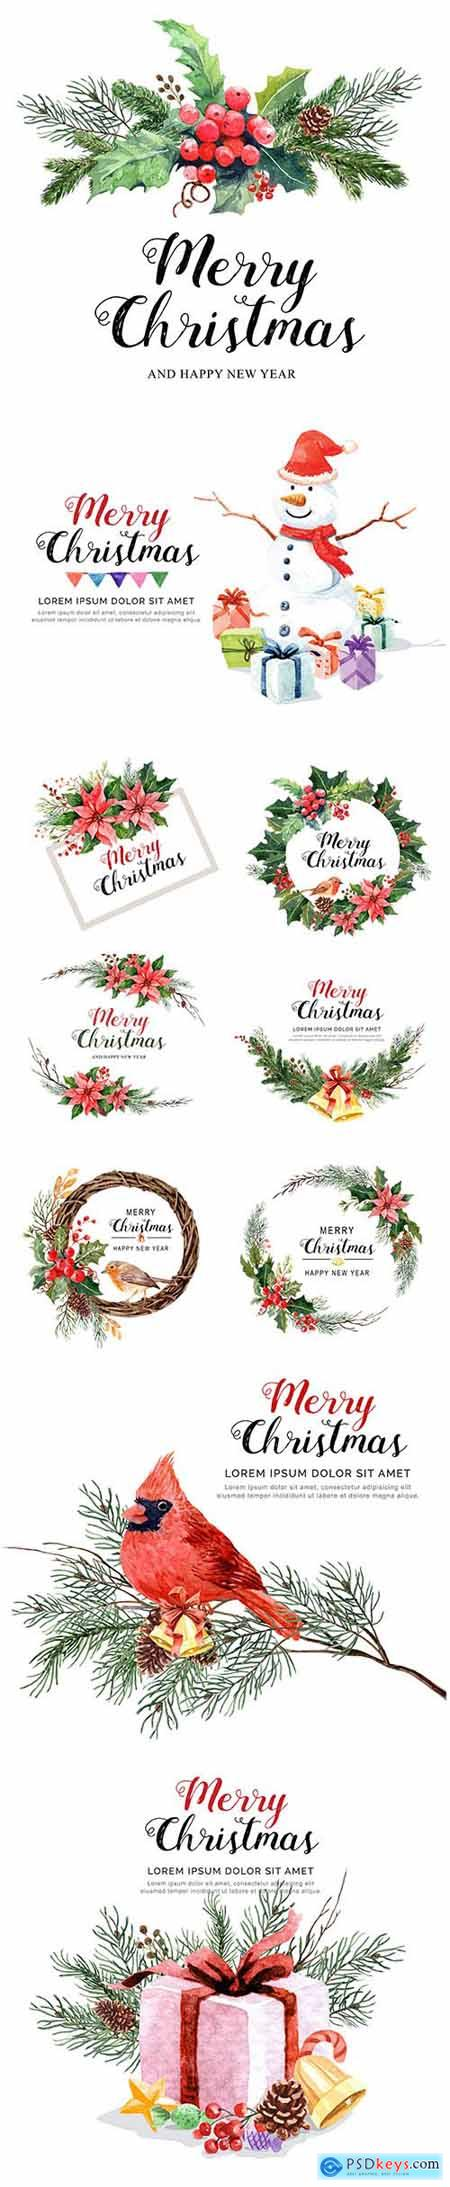 Vector Set - Watercolor Christmas Illustrations with Decor